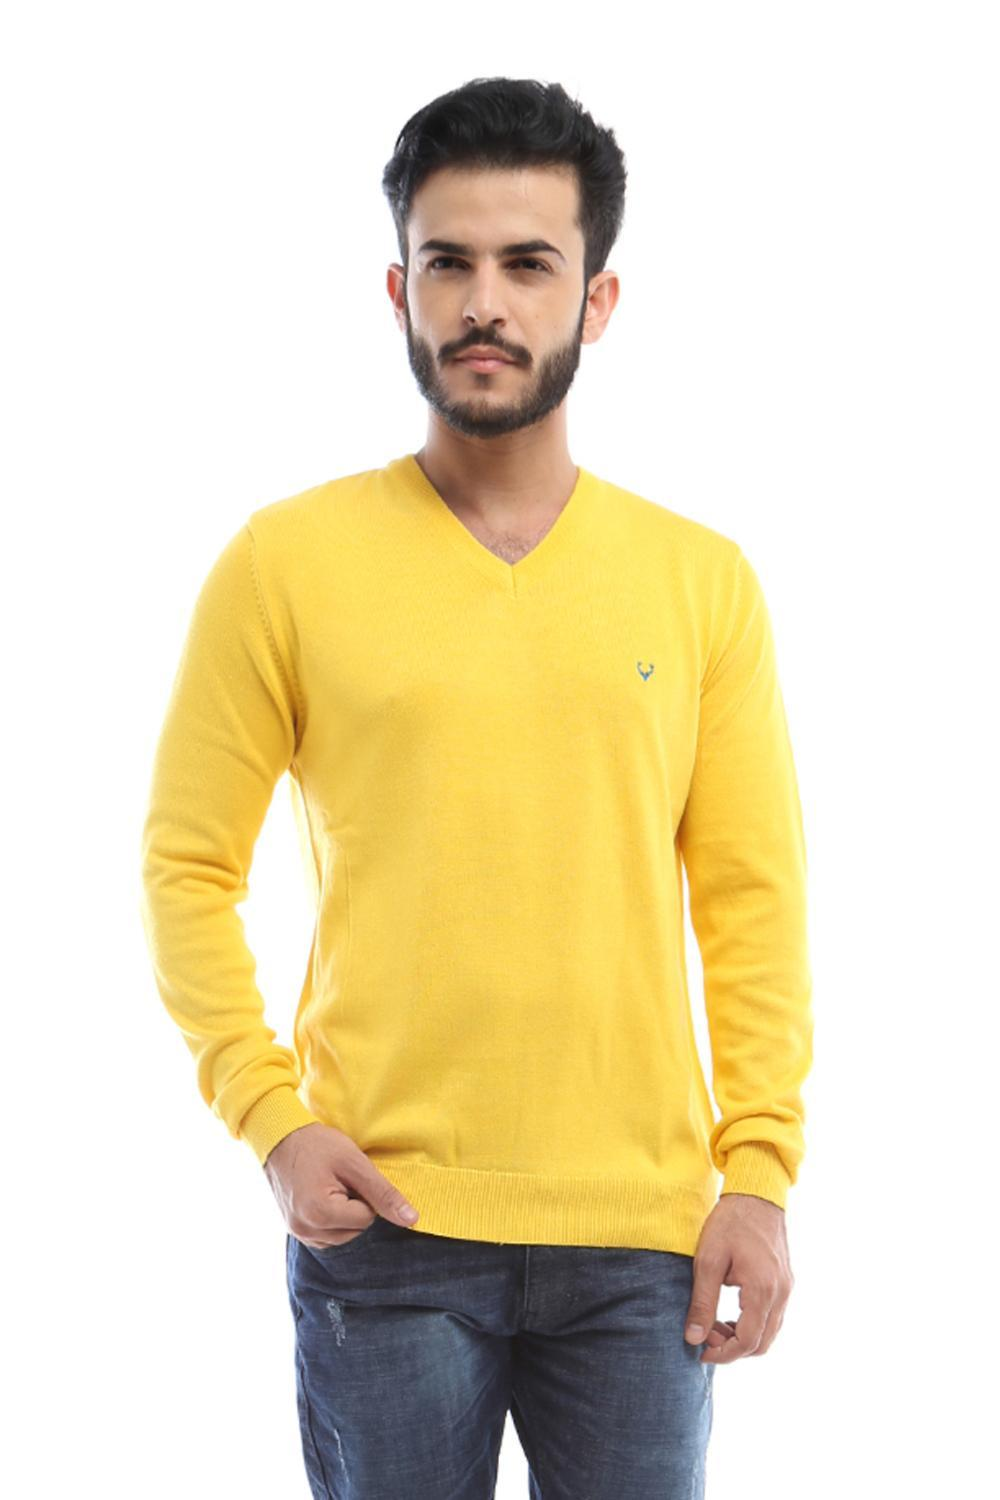 Solly Sport Sweaters, Allen Solly Yellow Sweater for Men at Allensolly.com